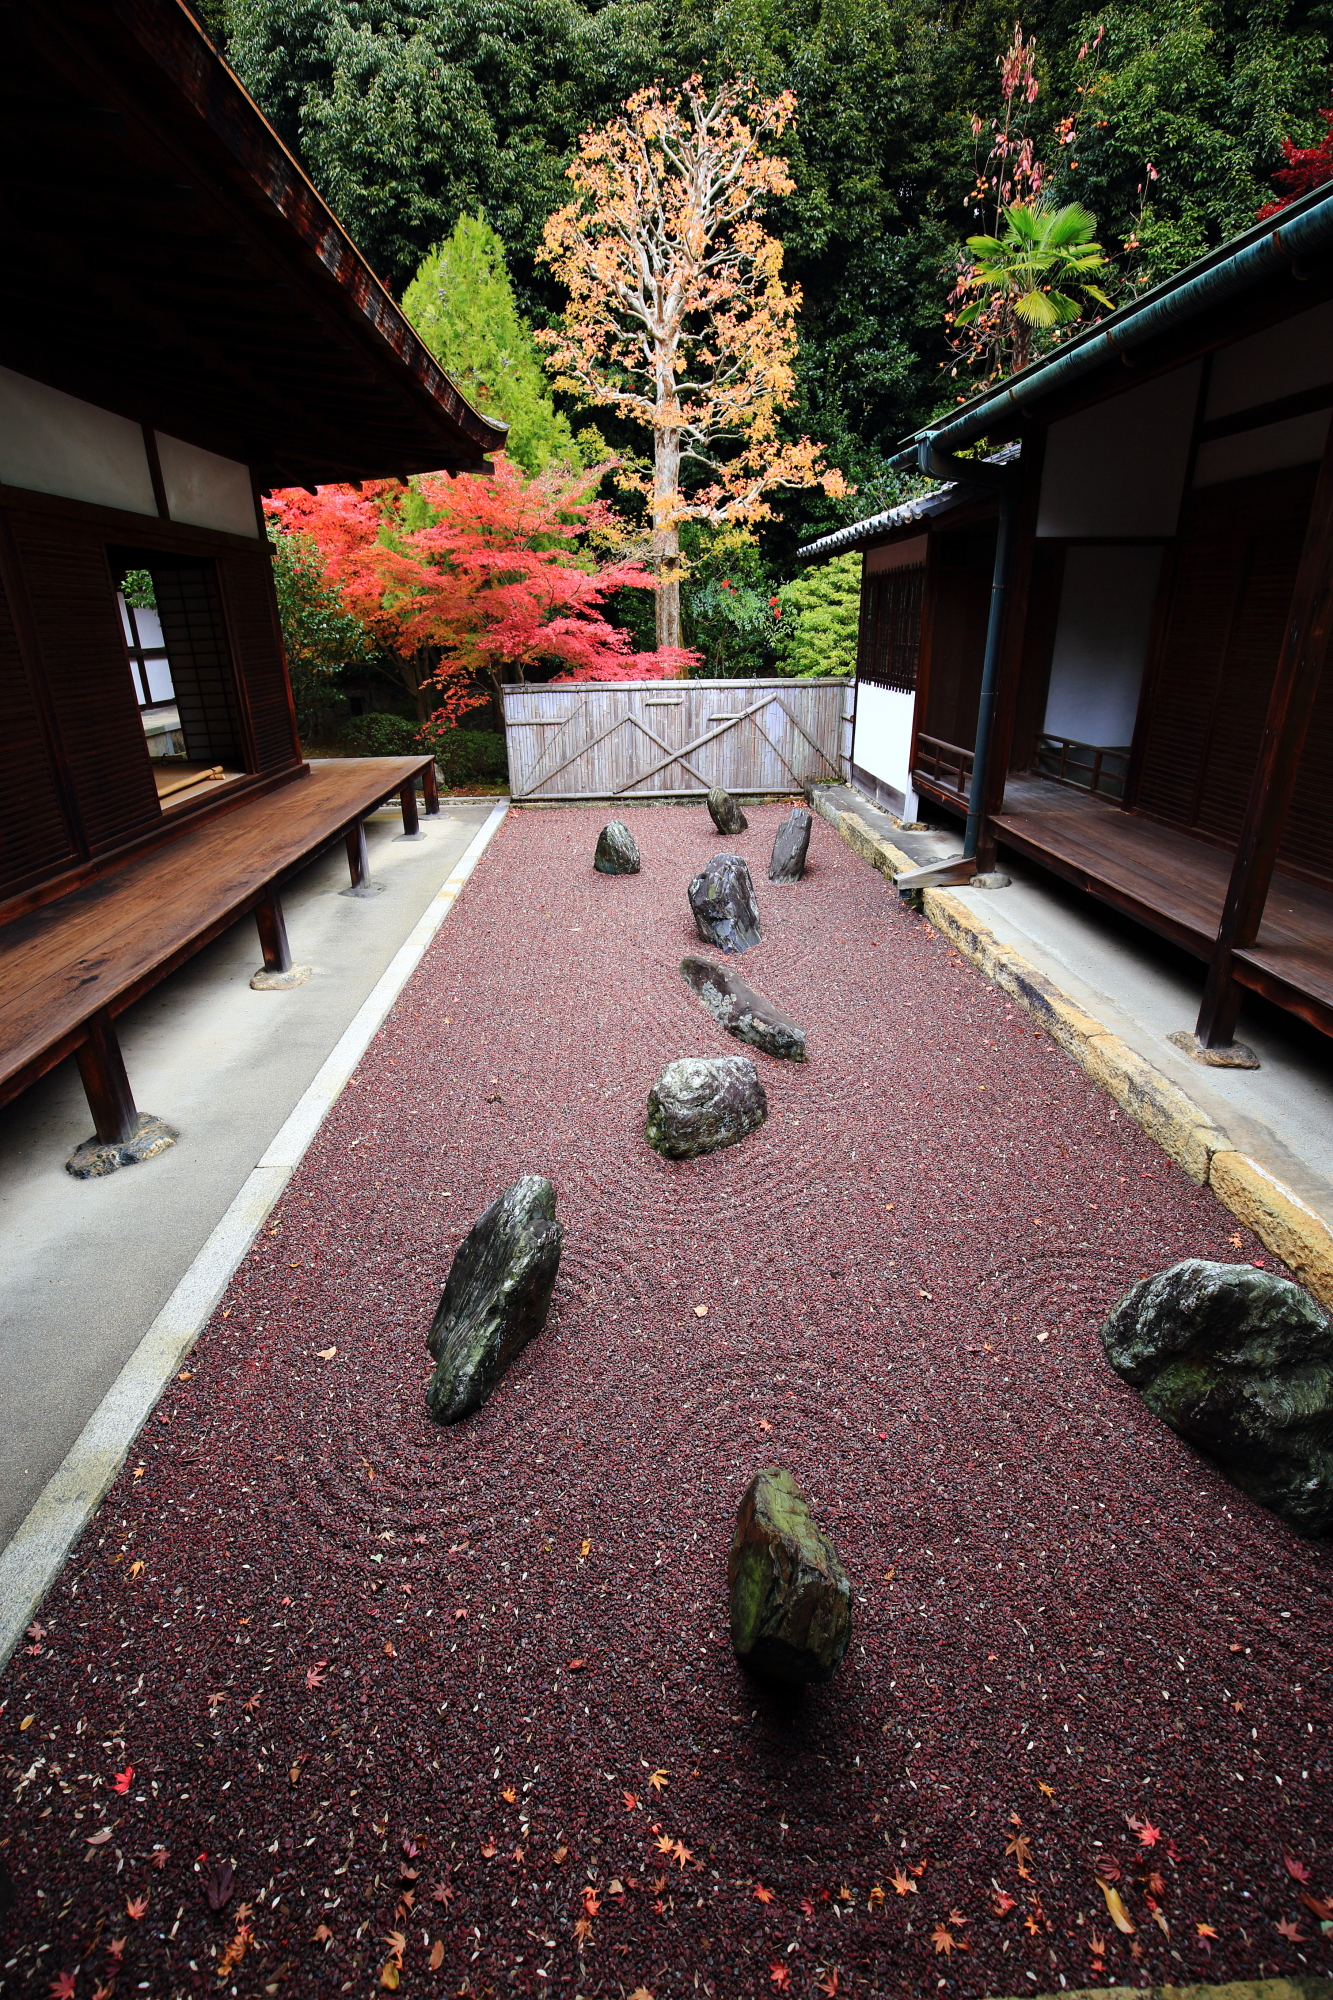 Ryogin-an Temple Kyoto autumn leaves 紅葉 不離の庭 東庭 龍吟庵 秋